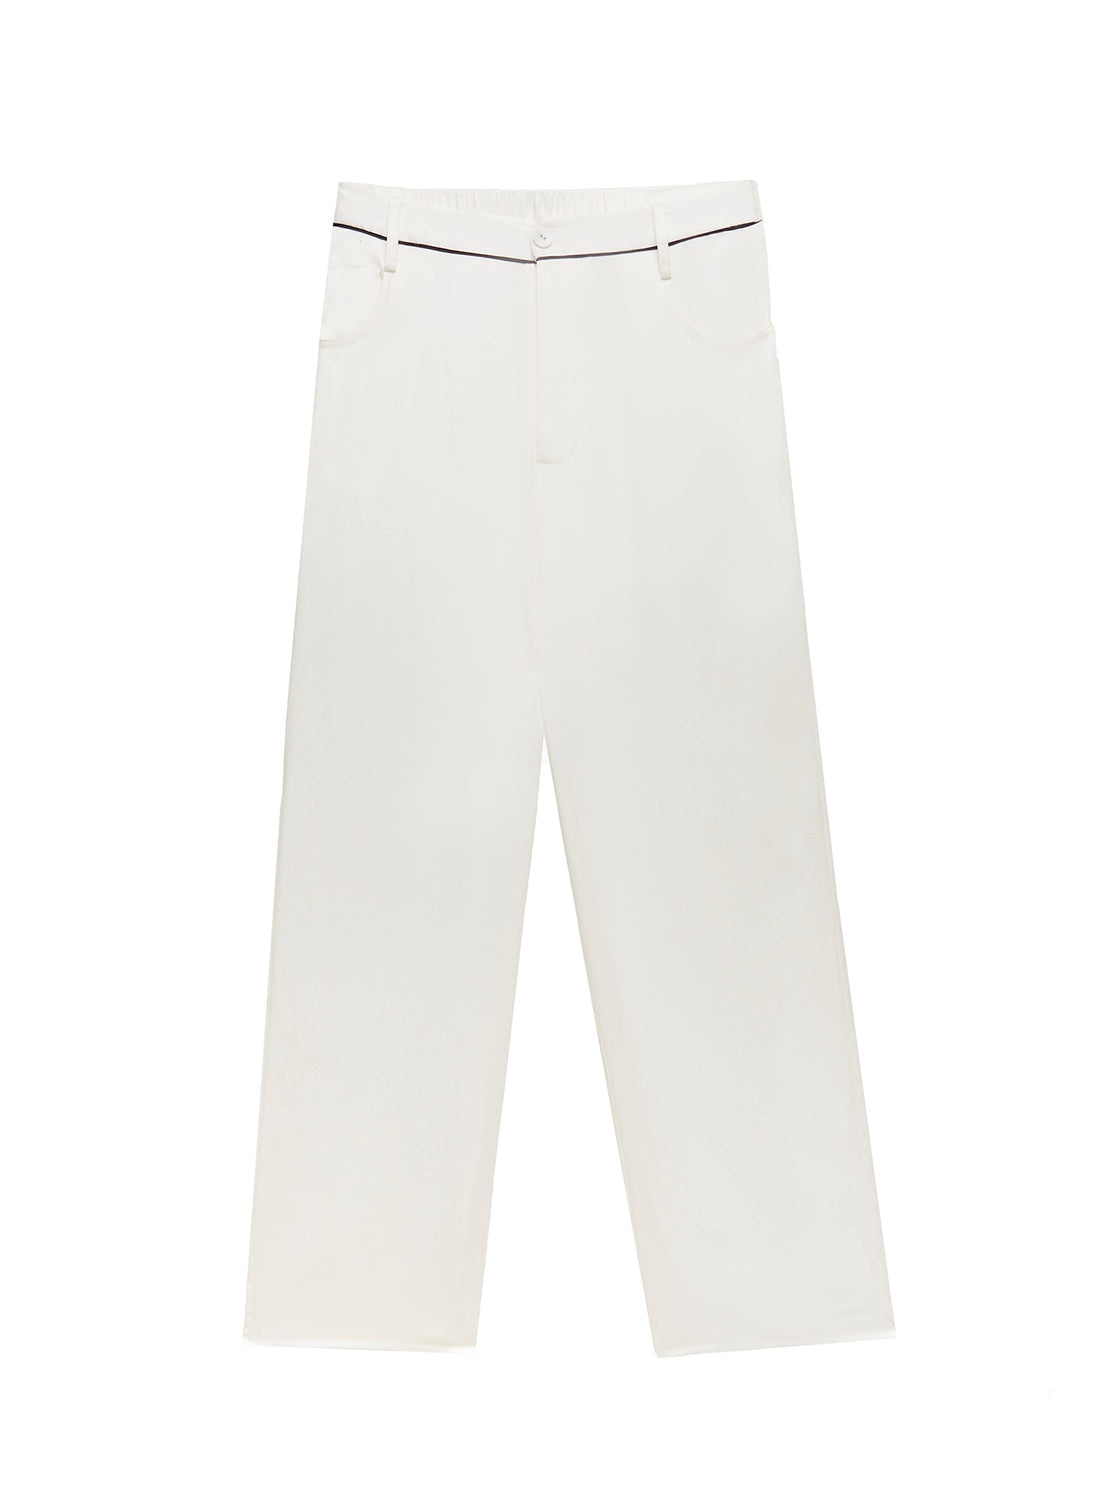 Washable Silk PJ Pant